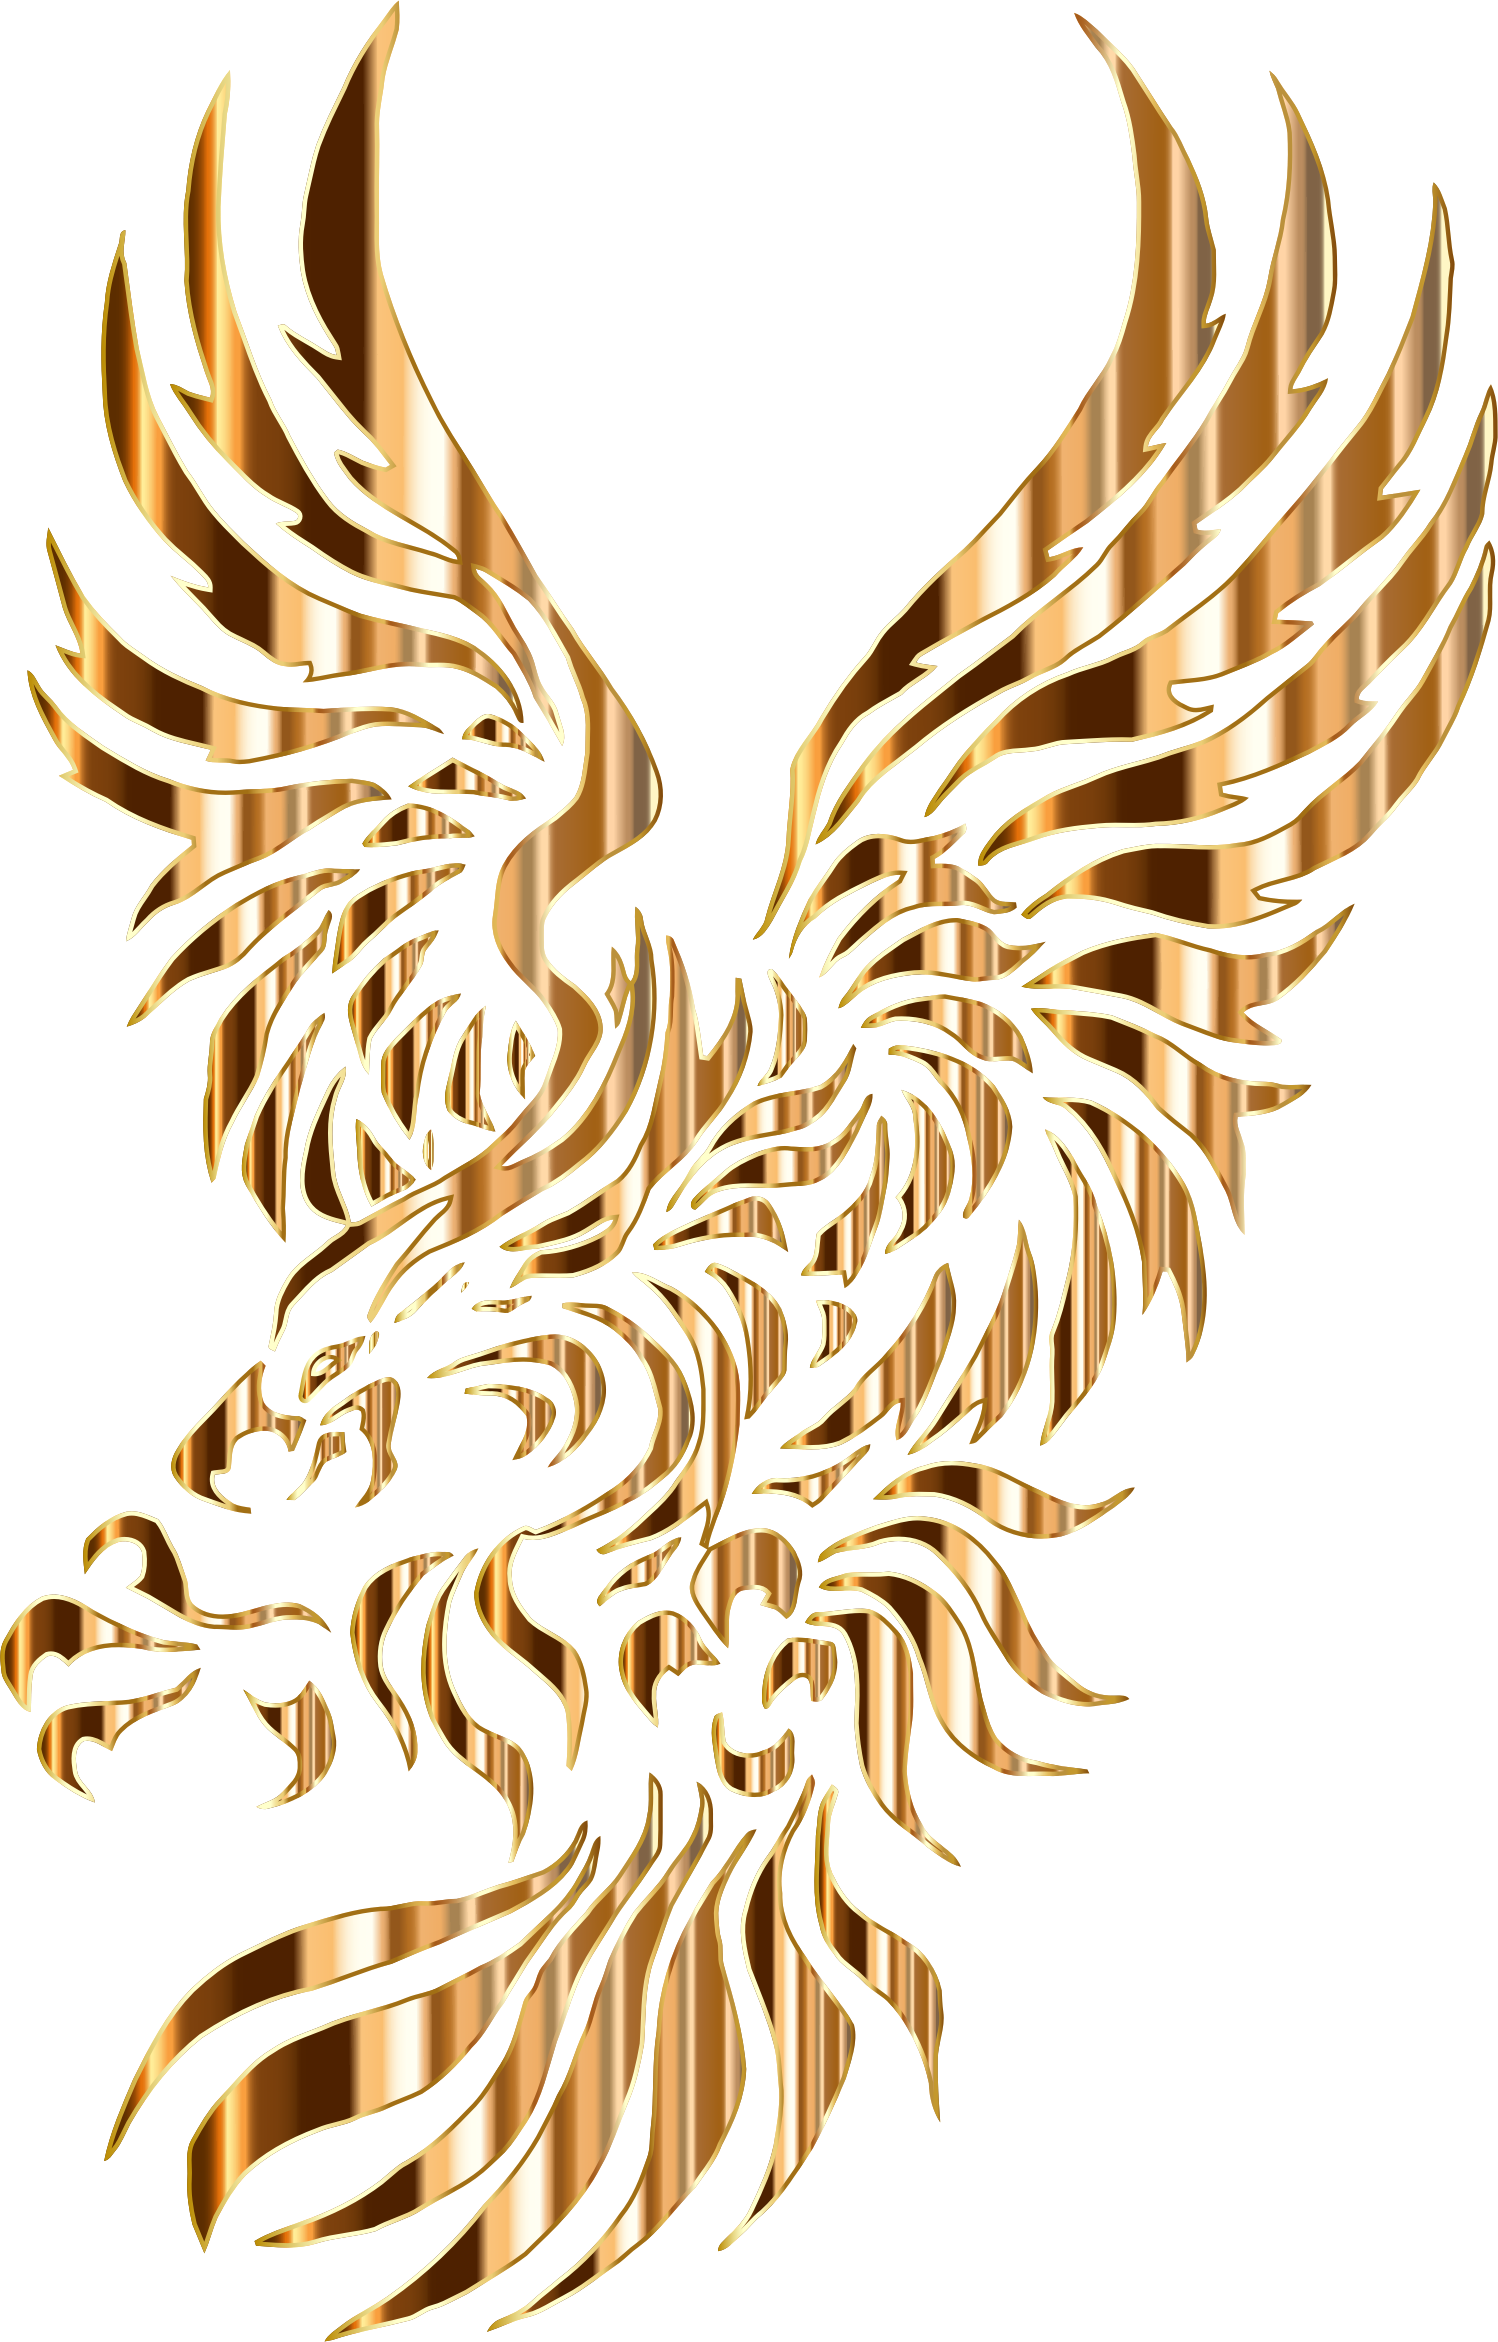 Chromatic Tribal Eagle 2 5 No Background by GDJ